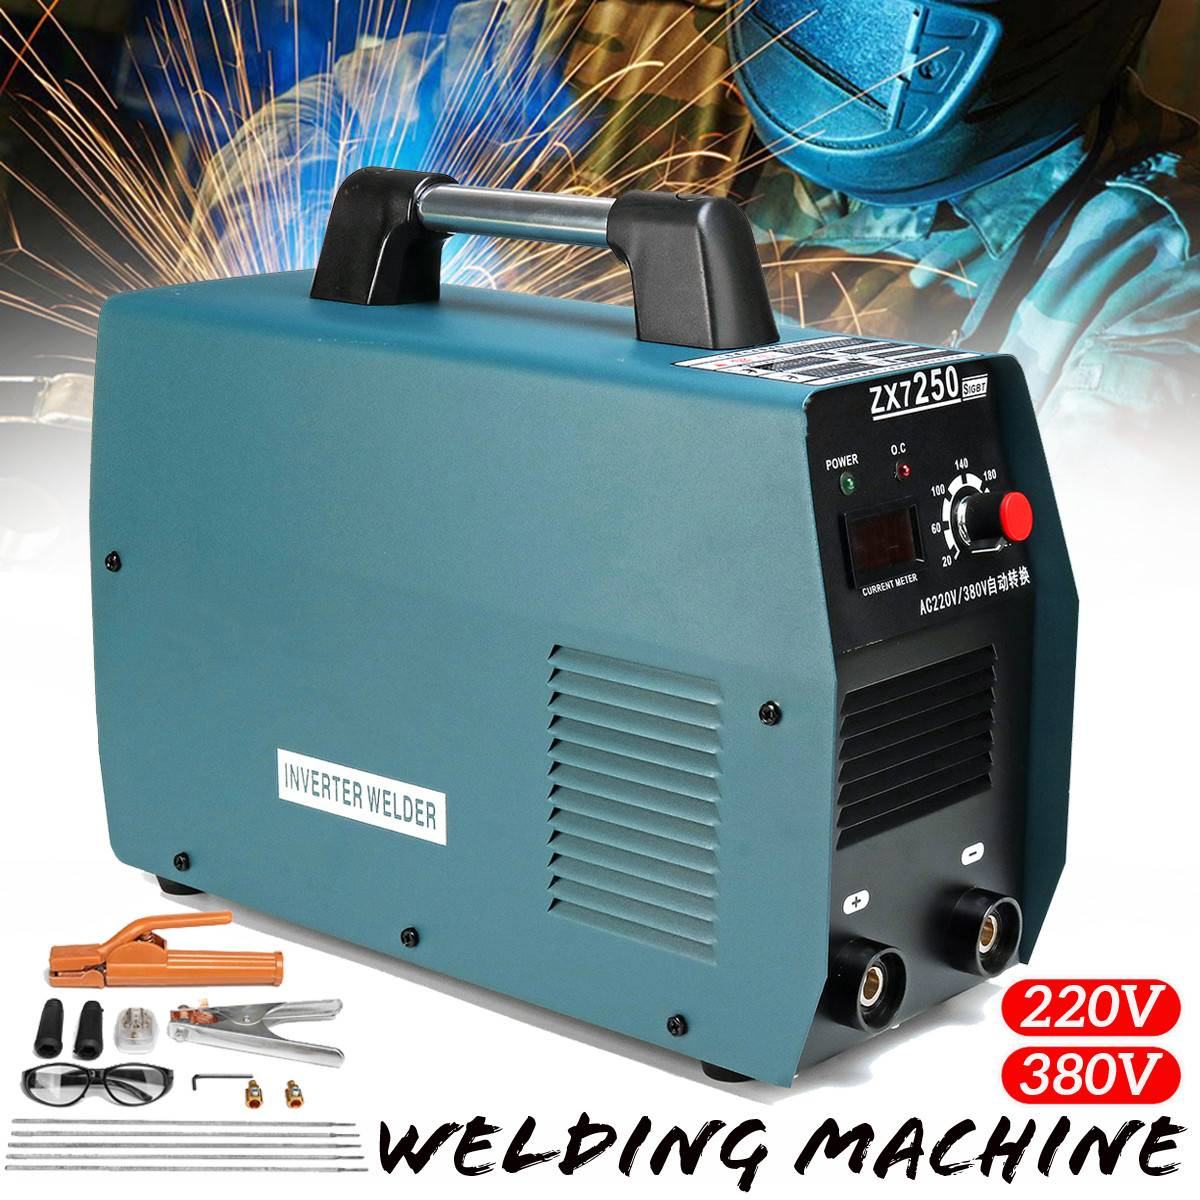 Welders, Cutters & Torches Forceful 1xhandheld Mini Mma Electric Welder 220v Power Inverter Arc Welding Machine Tool